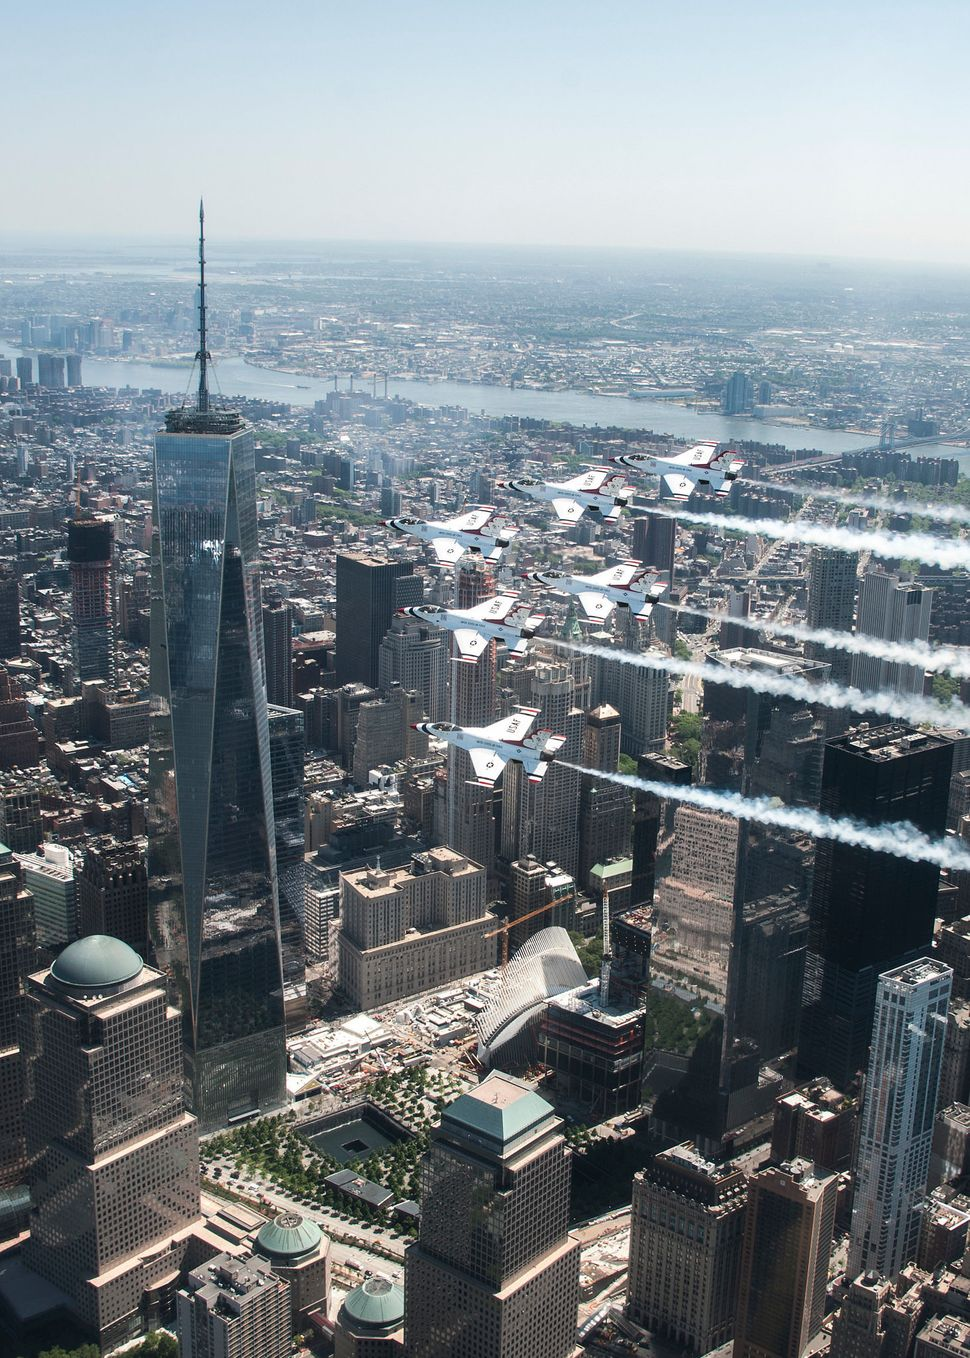 The Thunderbirds Delta formation flies by One World Trade Center during a photo chase mission in New York City May 22, 2015.